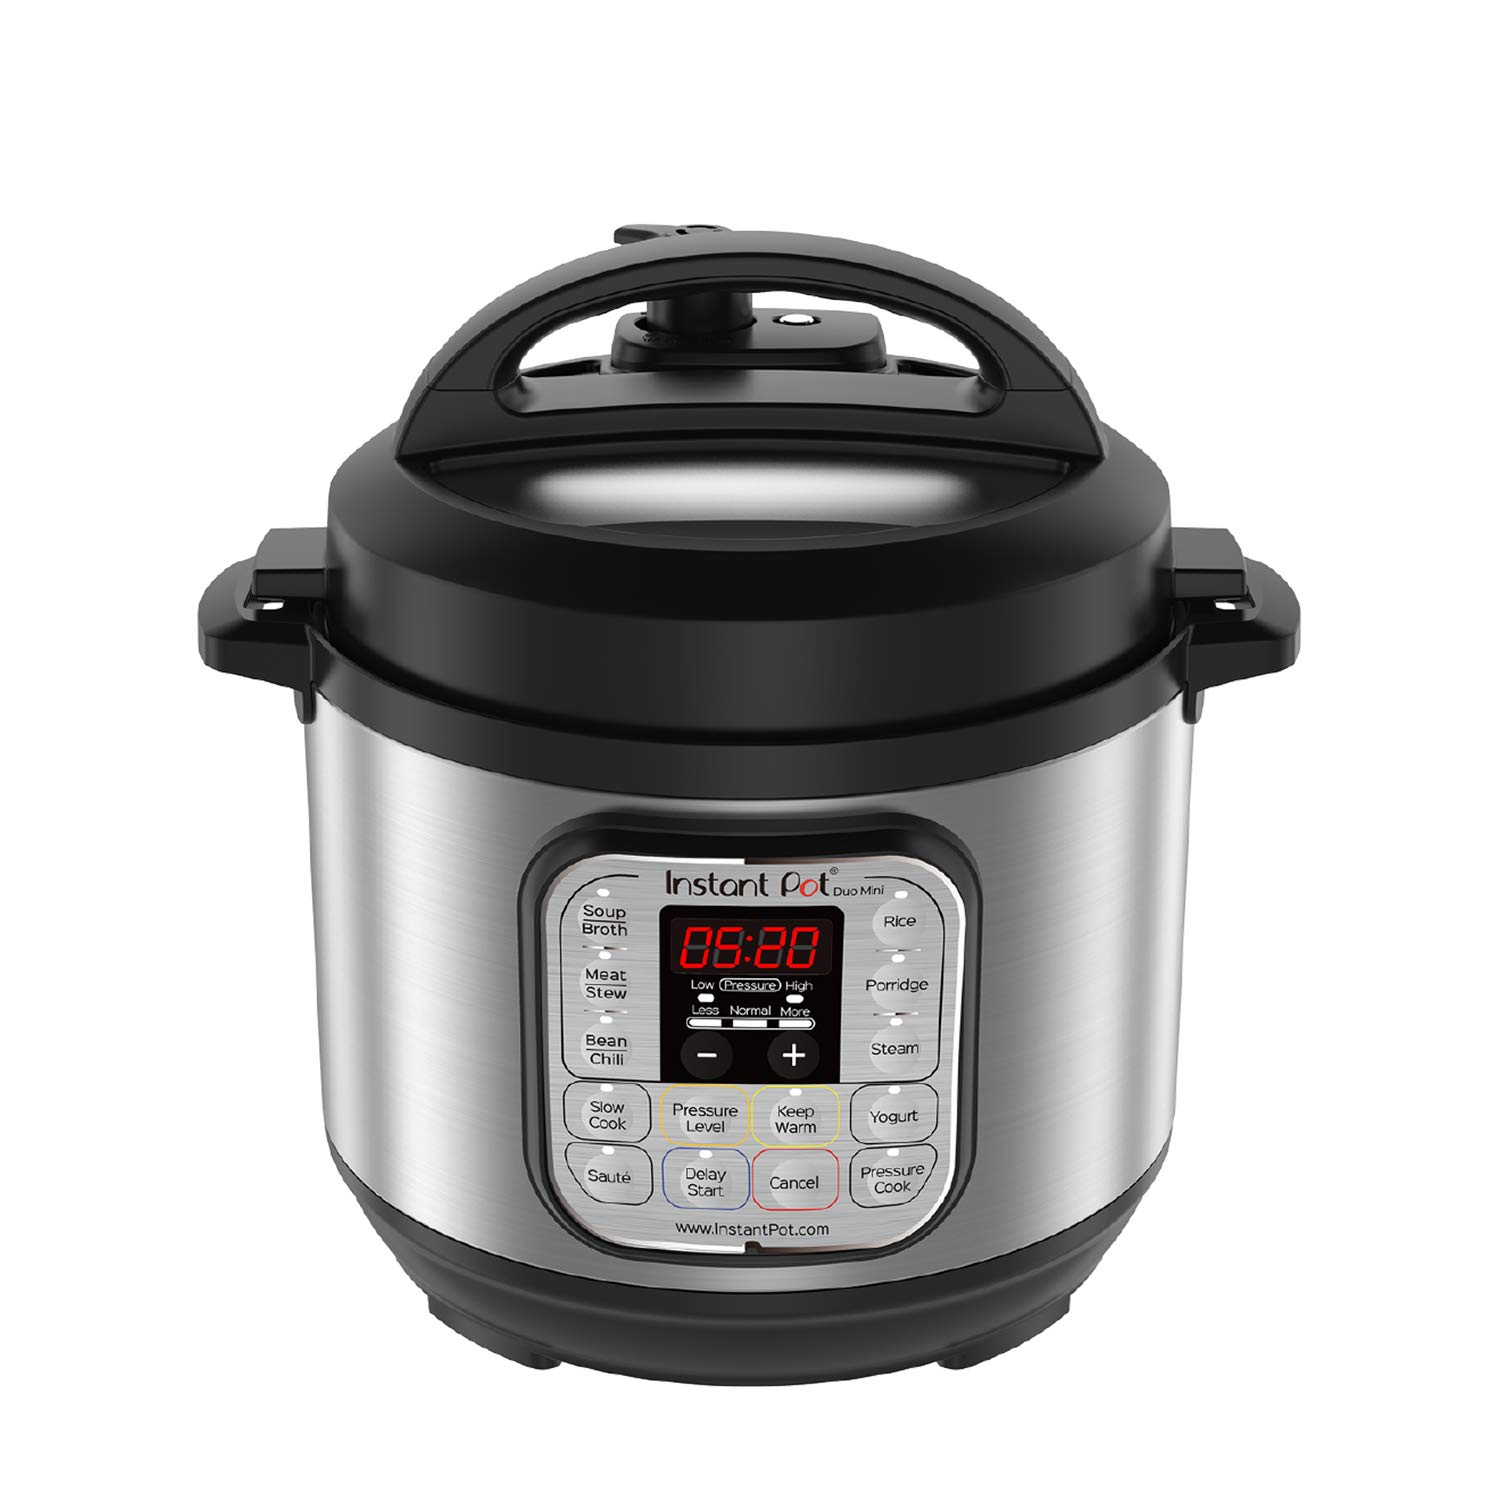 Instant pot duo mini 3 qt 7-in-1 multi-use programmable pressure cooker, slow cooker, rice cooker, steamer, sauté, yogurt maker, and warmer